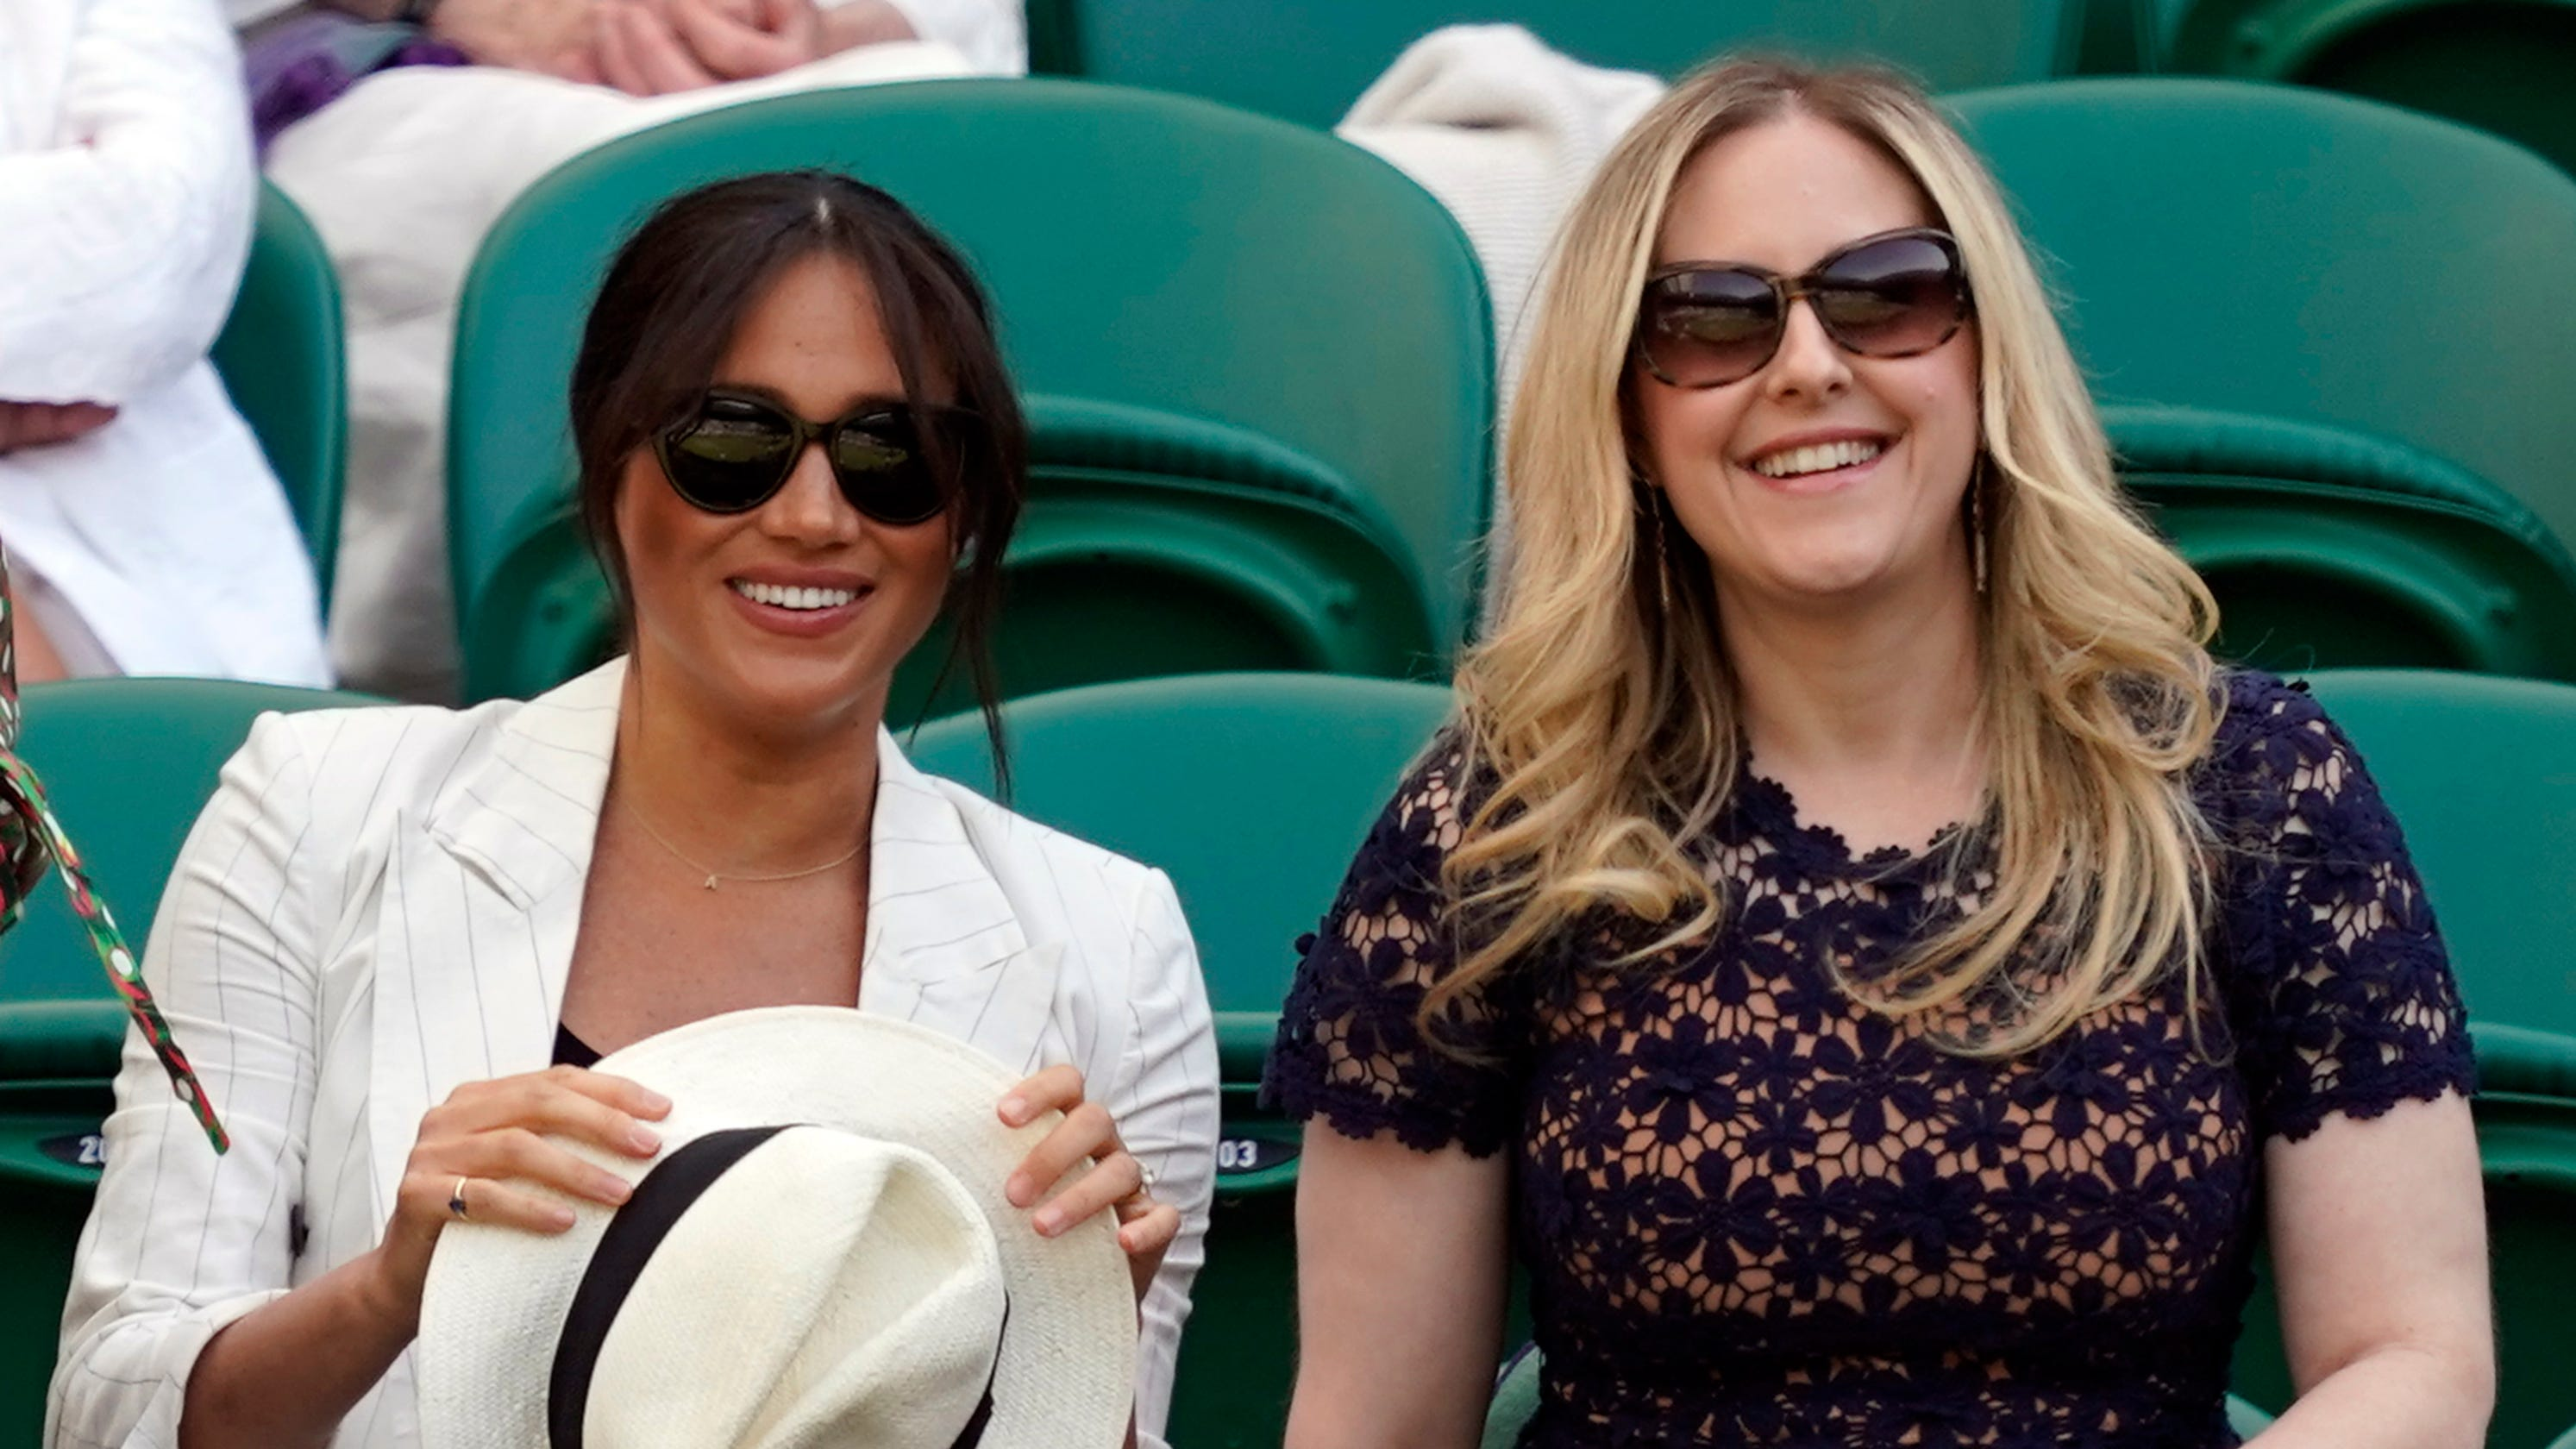 US Open prepares for royalty as Meghan Markle expected to watch Serena Williams in final